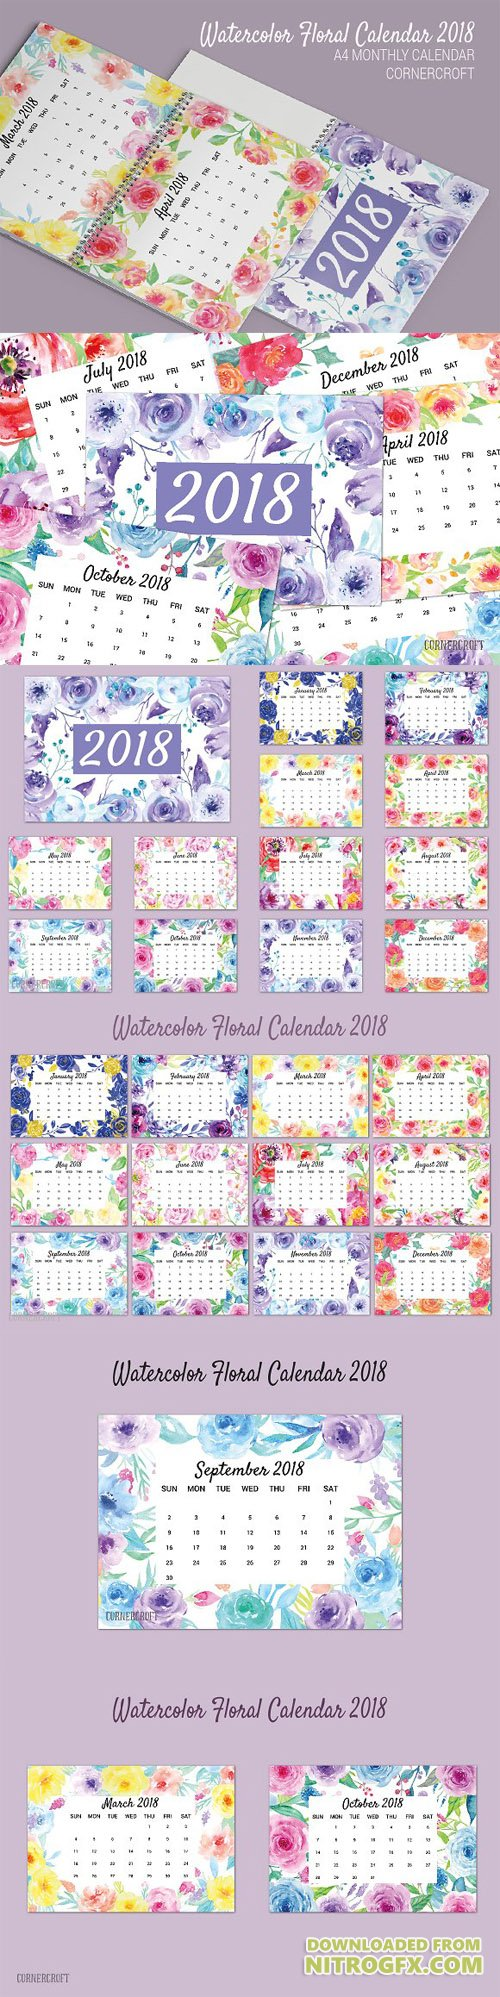 Watercolor Floral Calendar 2018 2047809